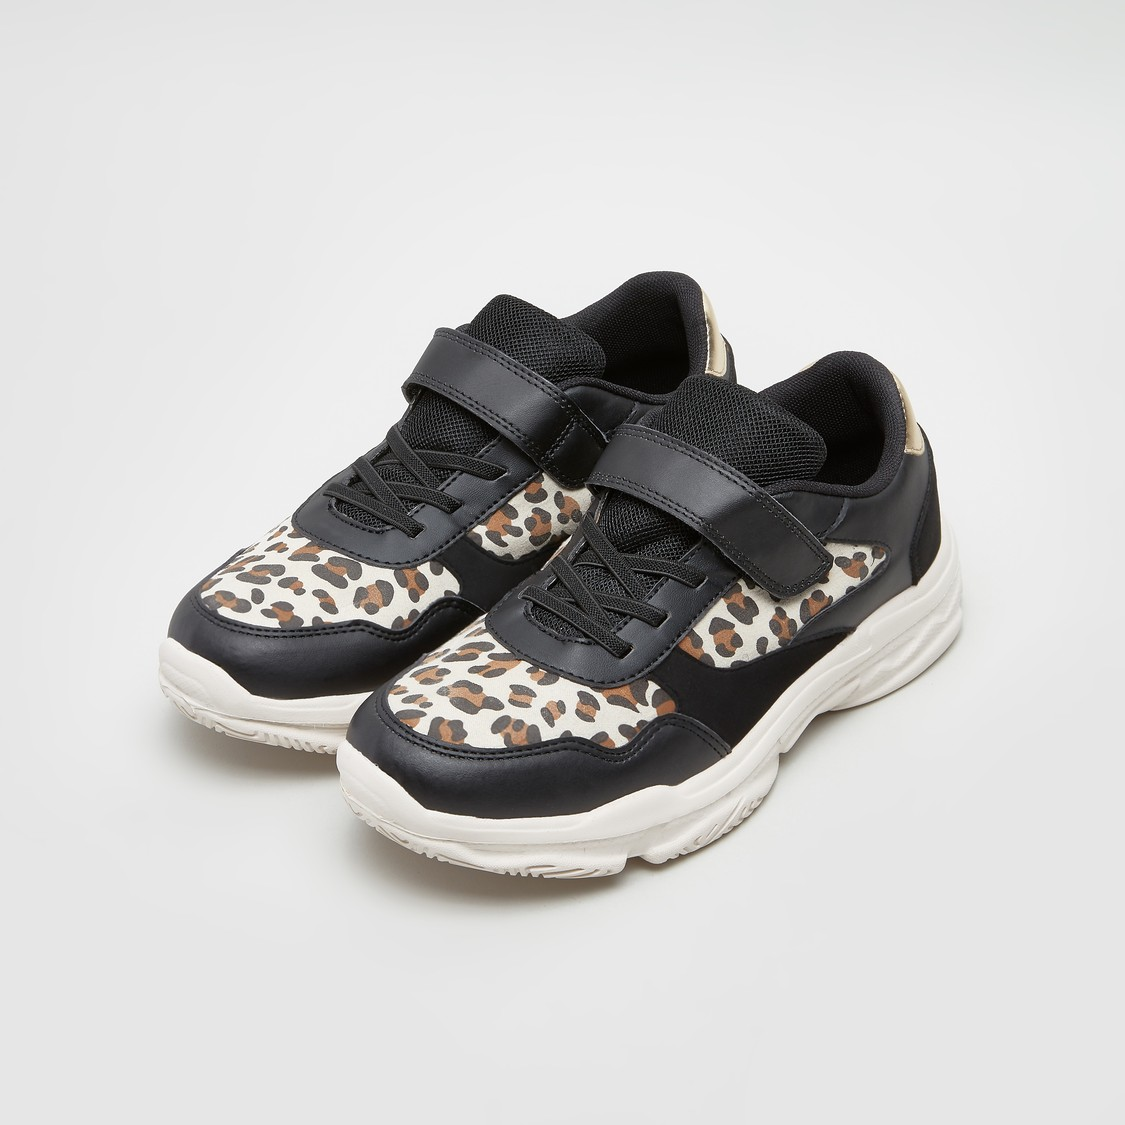 Printed Lace-Up Sneakers with Hook and Loop Closure